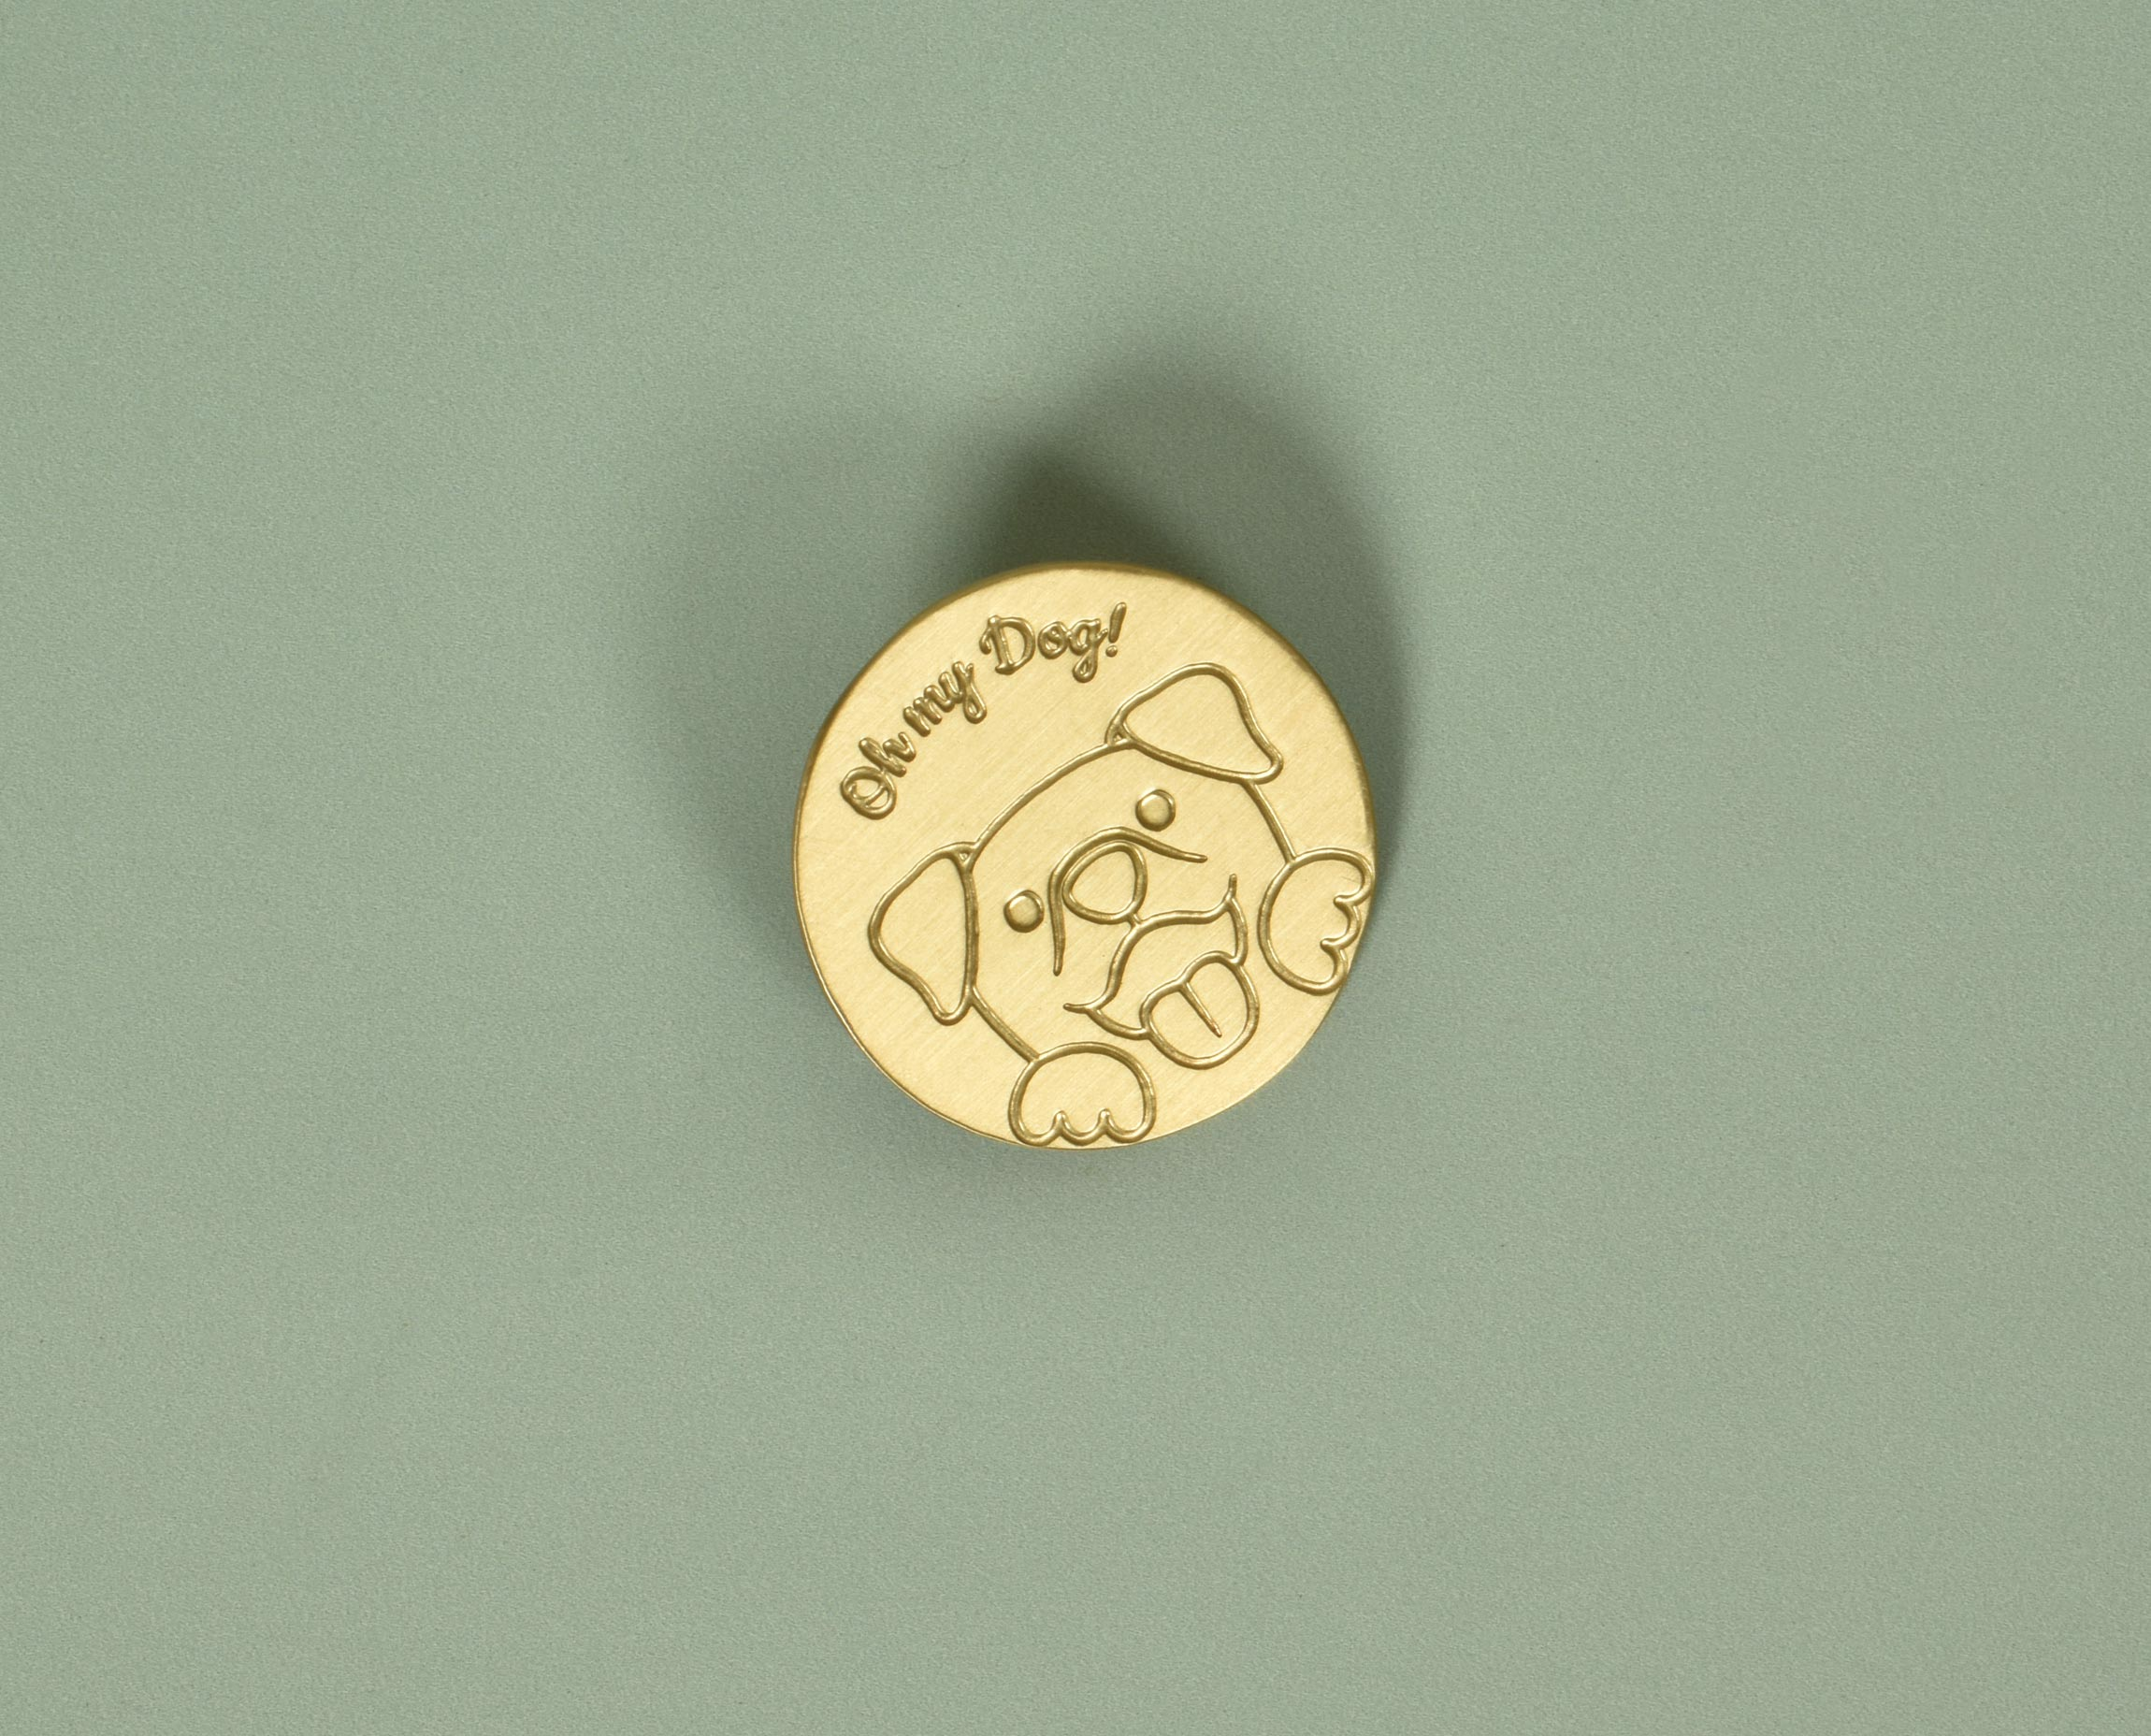 Making your pooch ready for any event or gathering is extremely fun. Here are some pawfully cute and fancy pins for your fluffy companion. These pins are made of brass and come with an easy to attach pin which makes it hassle free to peg them onto your dog's collar. You can peg this pin onto your belongings to share your proud parent moment too.